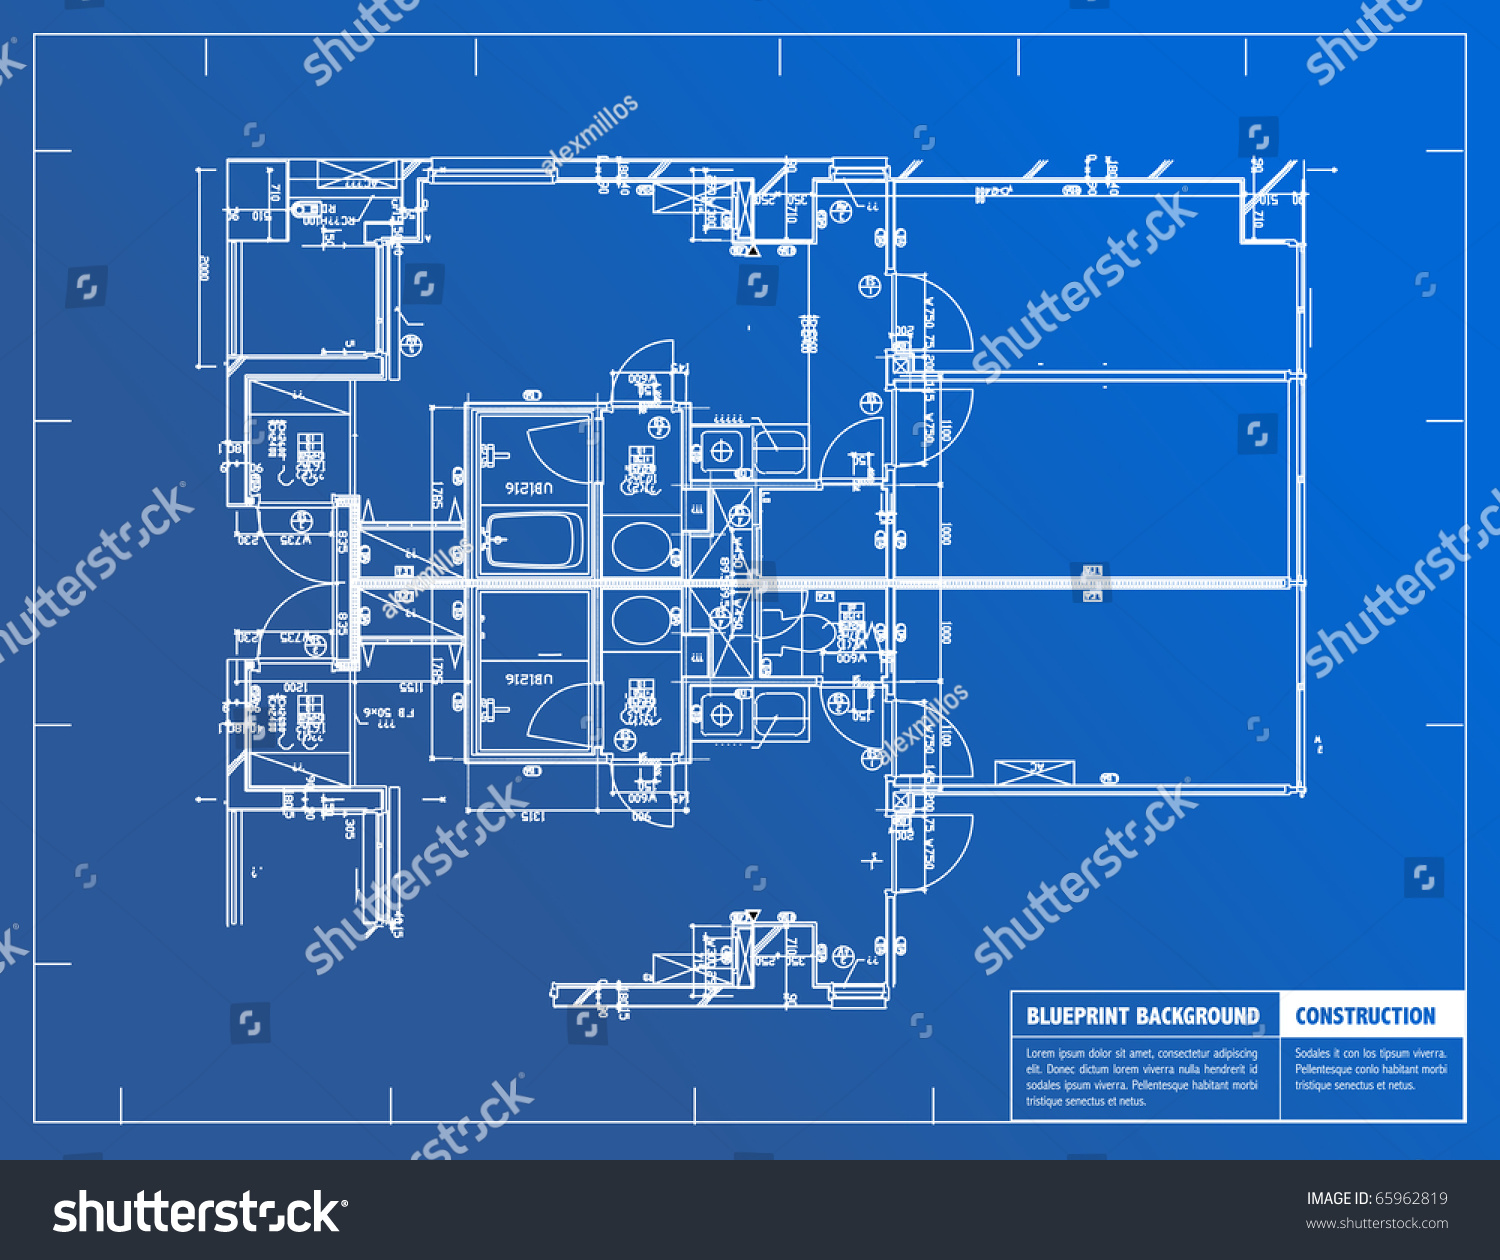 Sample architectural blueprints over blue background stock for Architecture blueprints